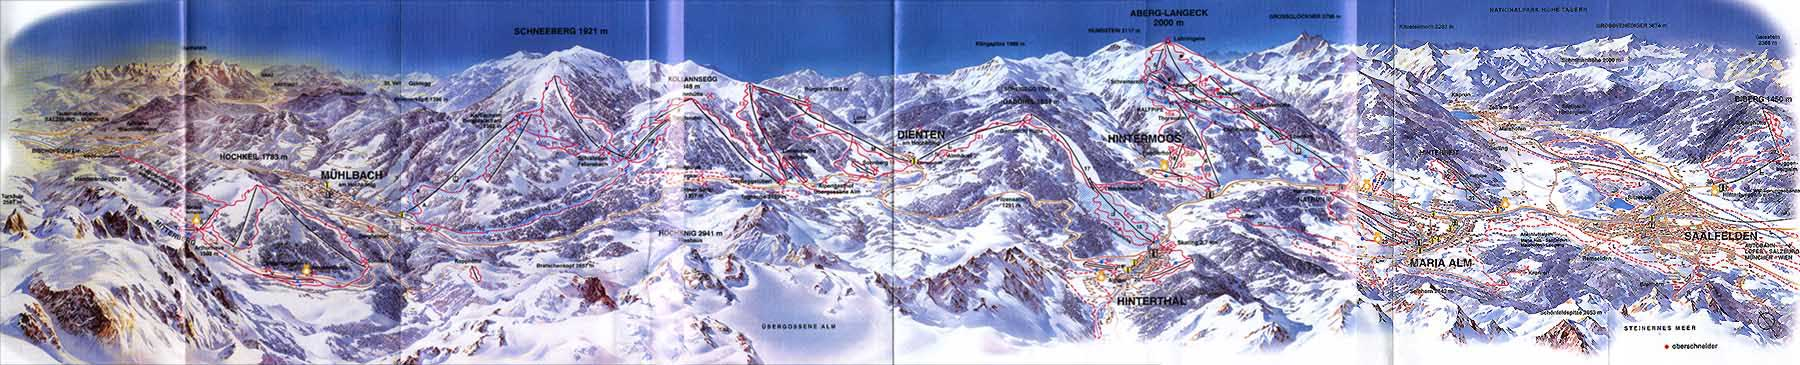 Langenbruck Piste / Trail Map